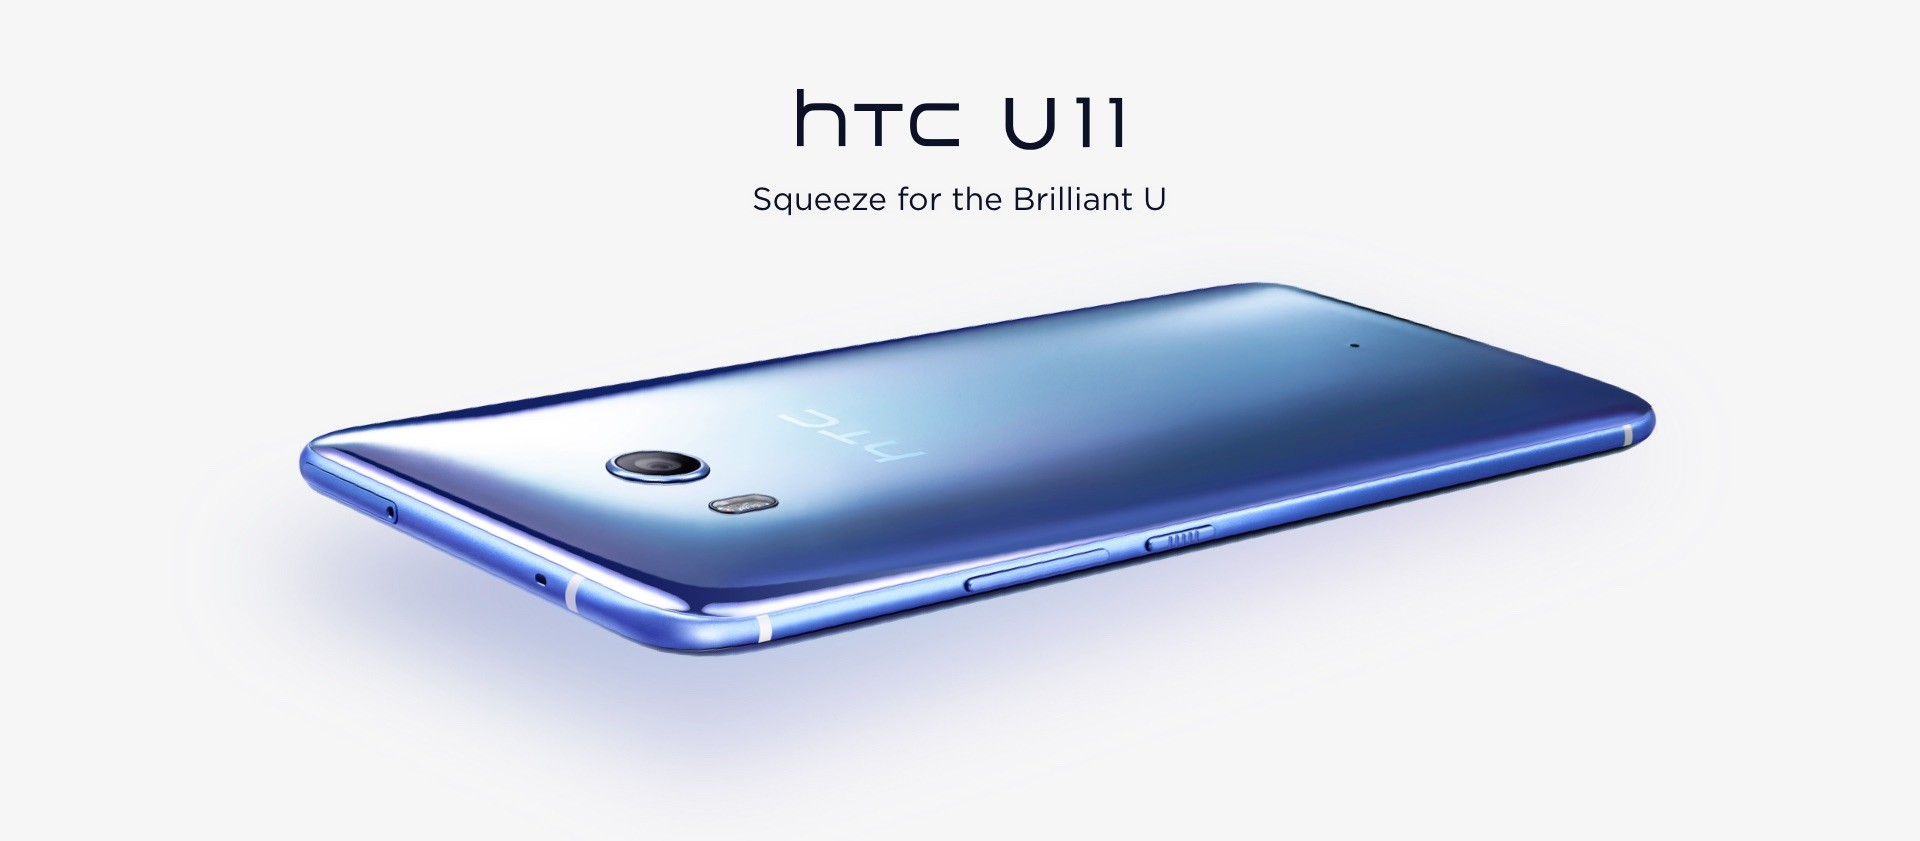 Top10 android mobiles in india, Htc u11  specification,Htc u11 price